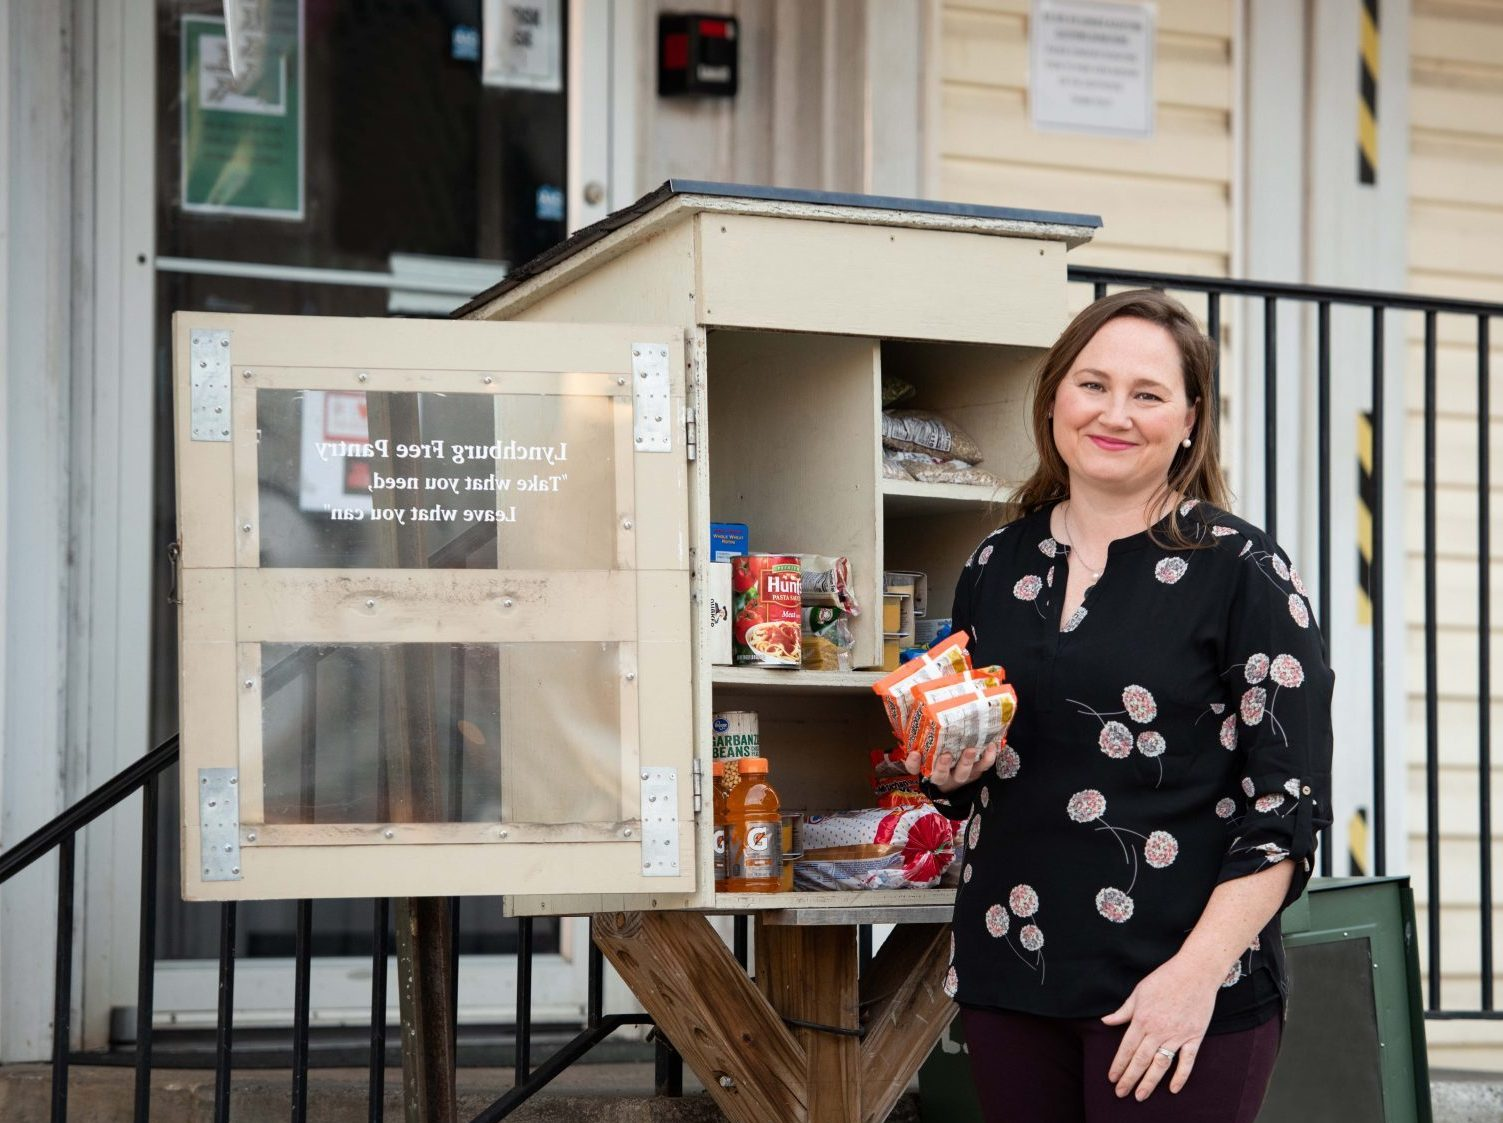 Megan Huffman poses in front of a small community food pantry